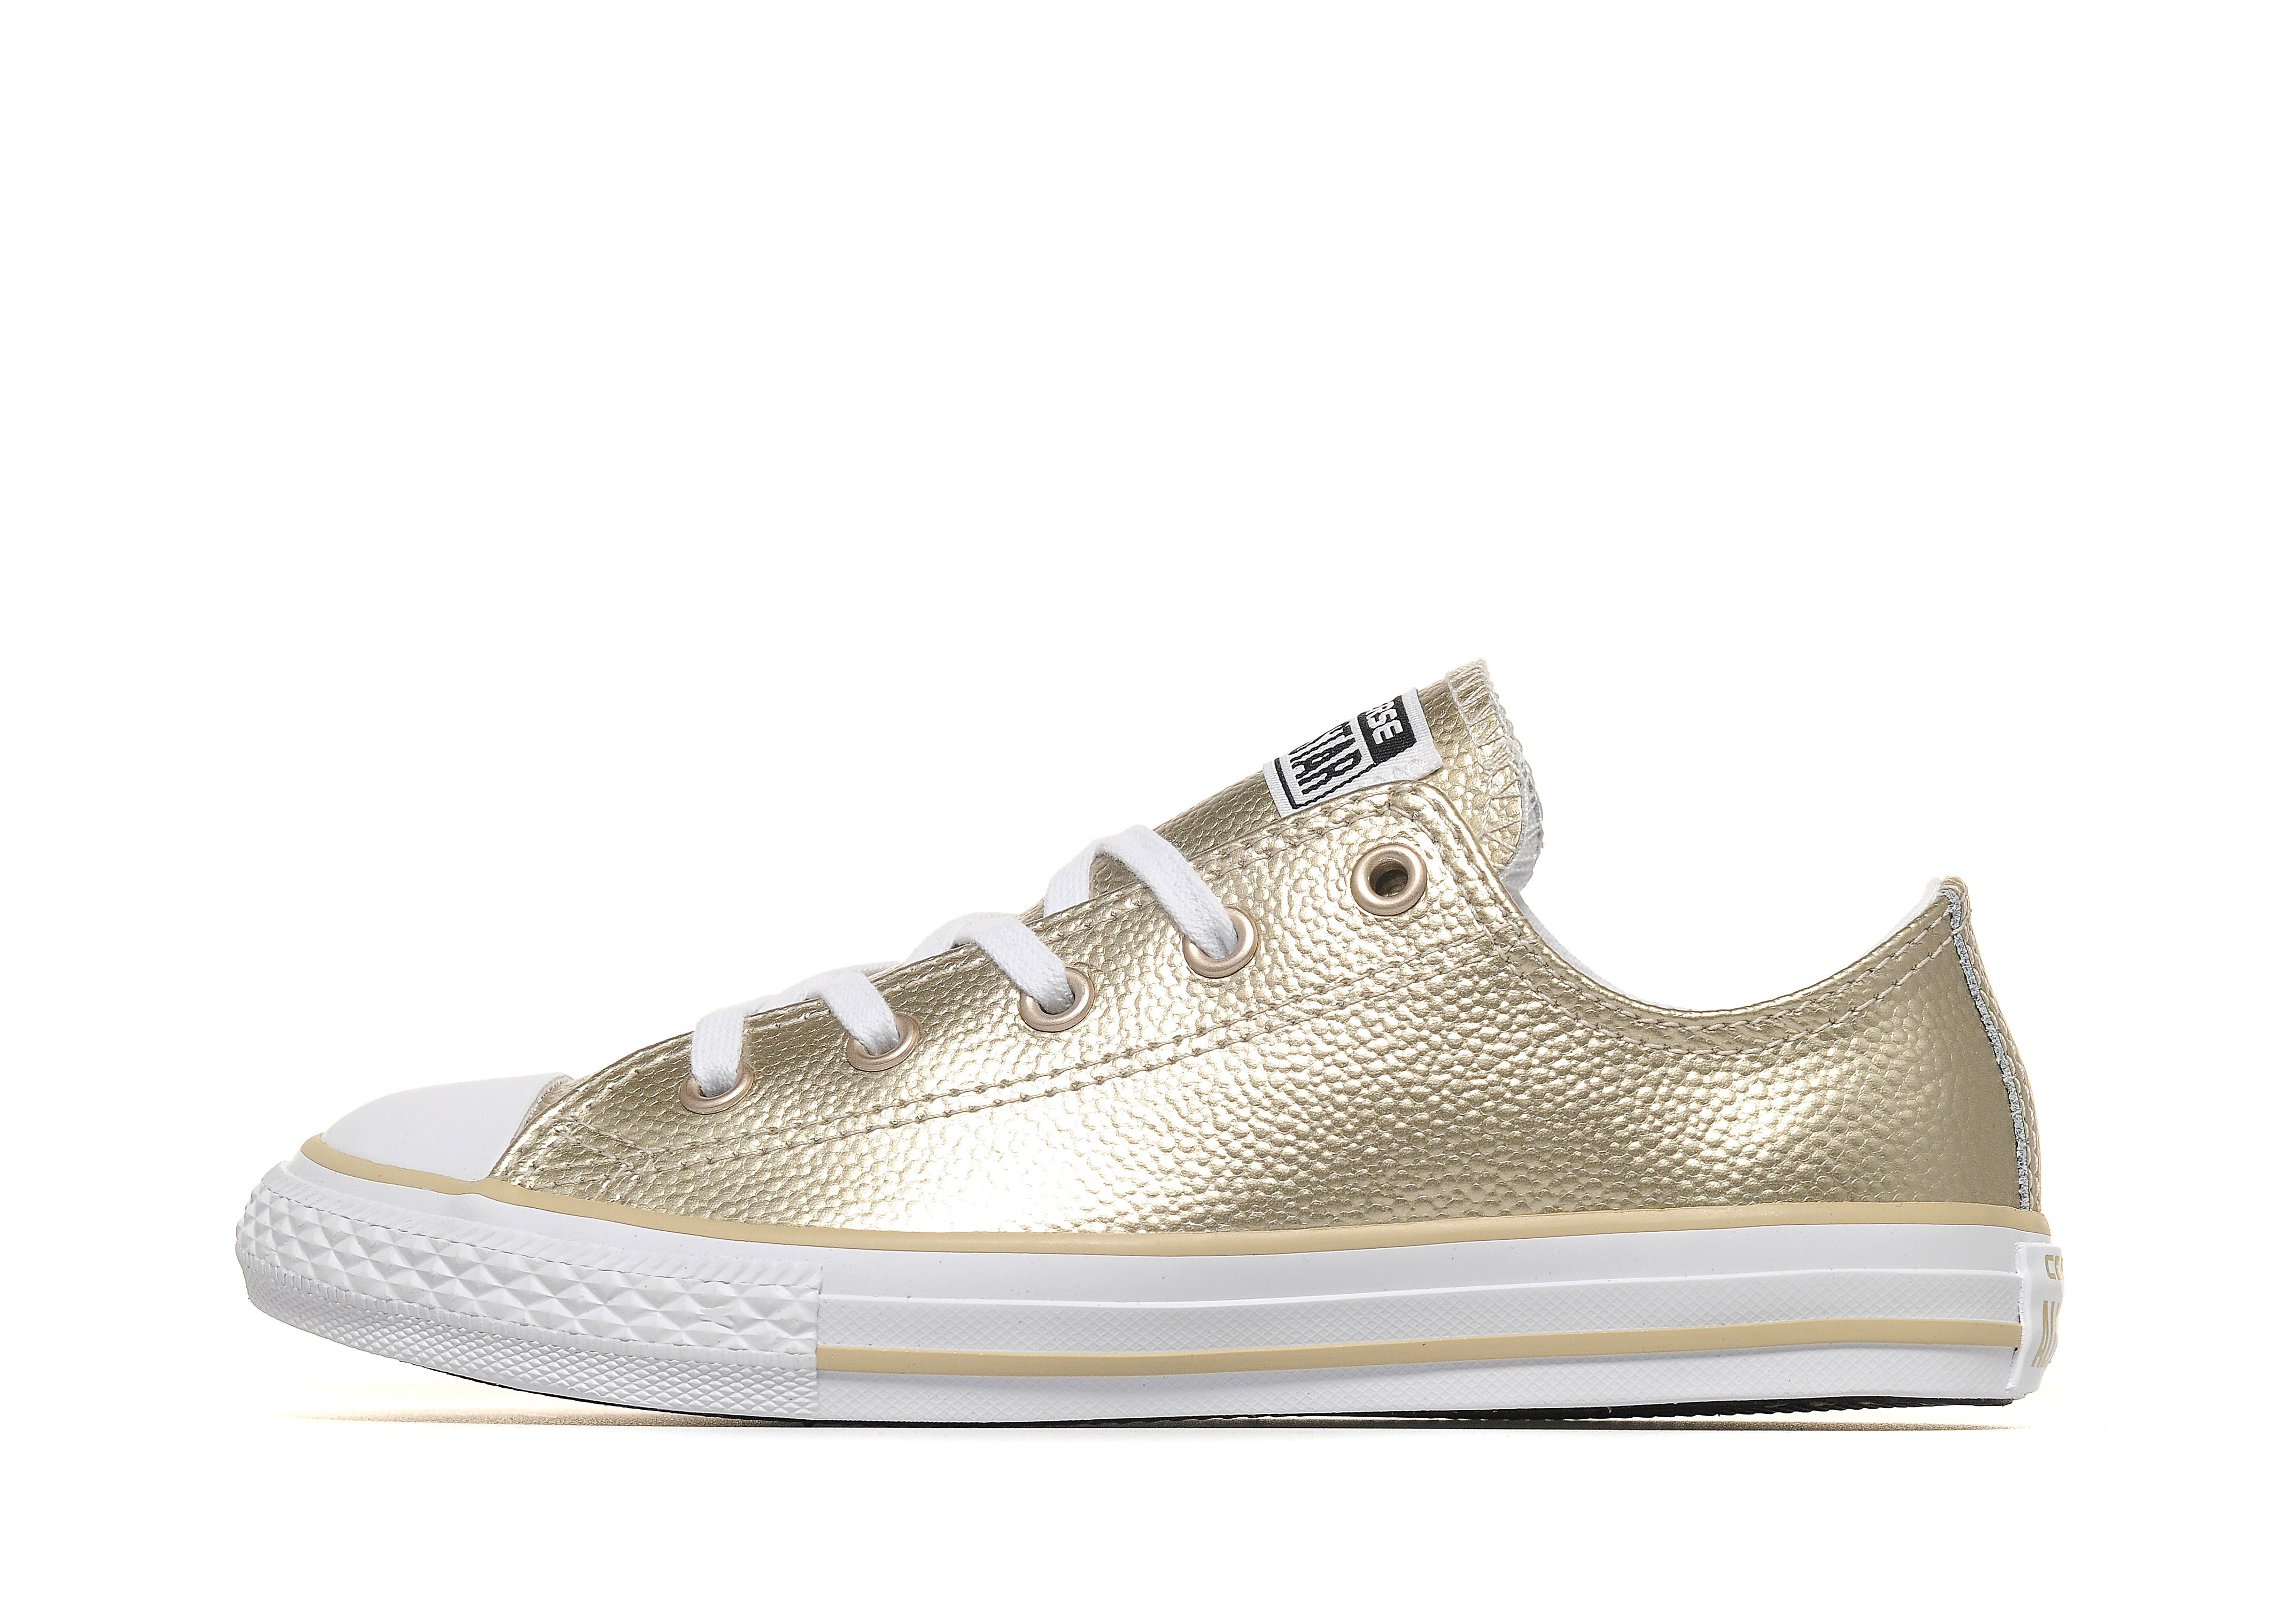 7a339ae4a261 Converse All Star Ox Leather Children - Gold - Kids - Sports King Store